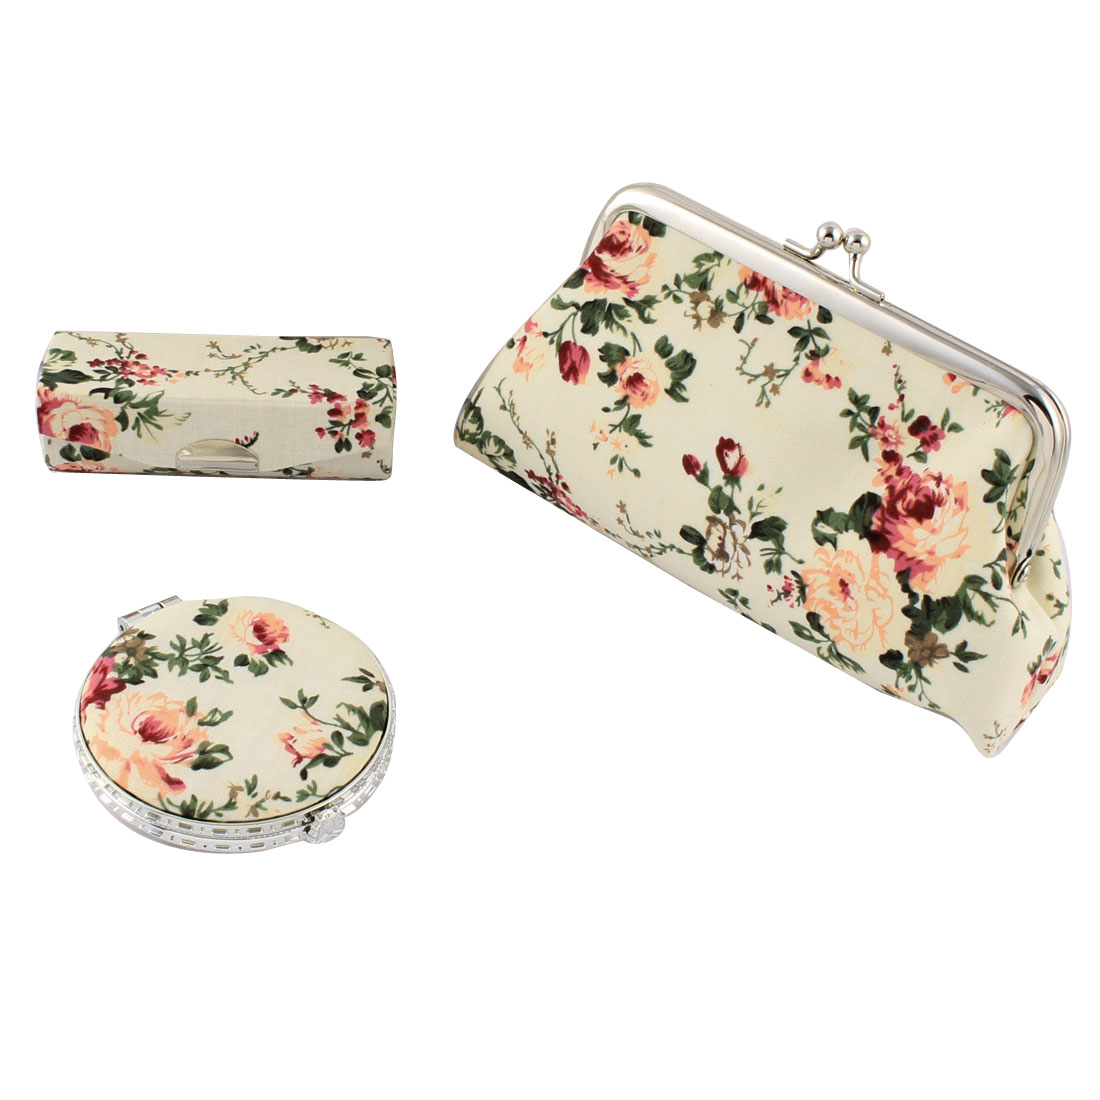 Lady Party Travel Makeup Peony Pattern Wallet Mirror Lipstick Case 3 in 1